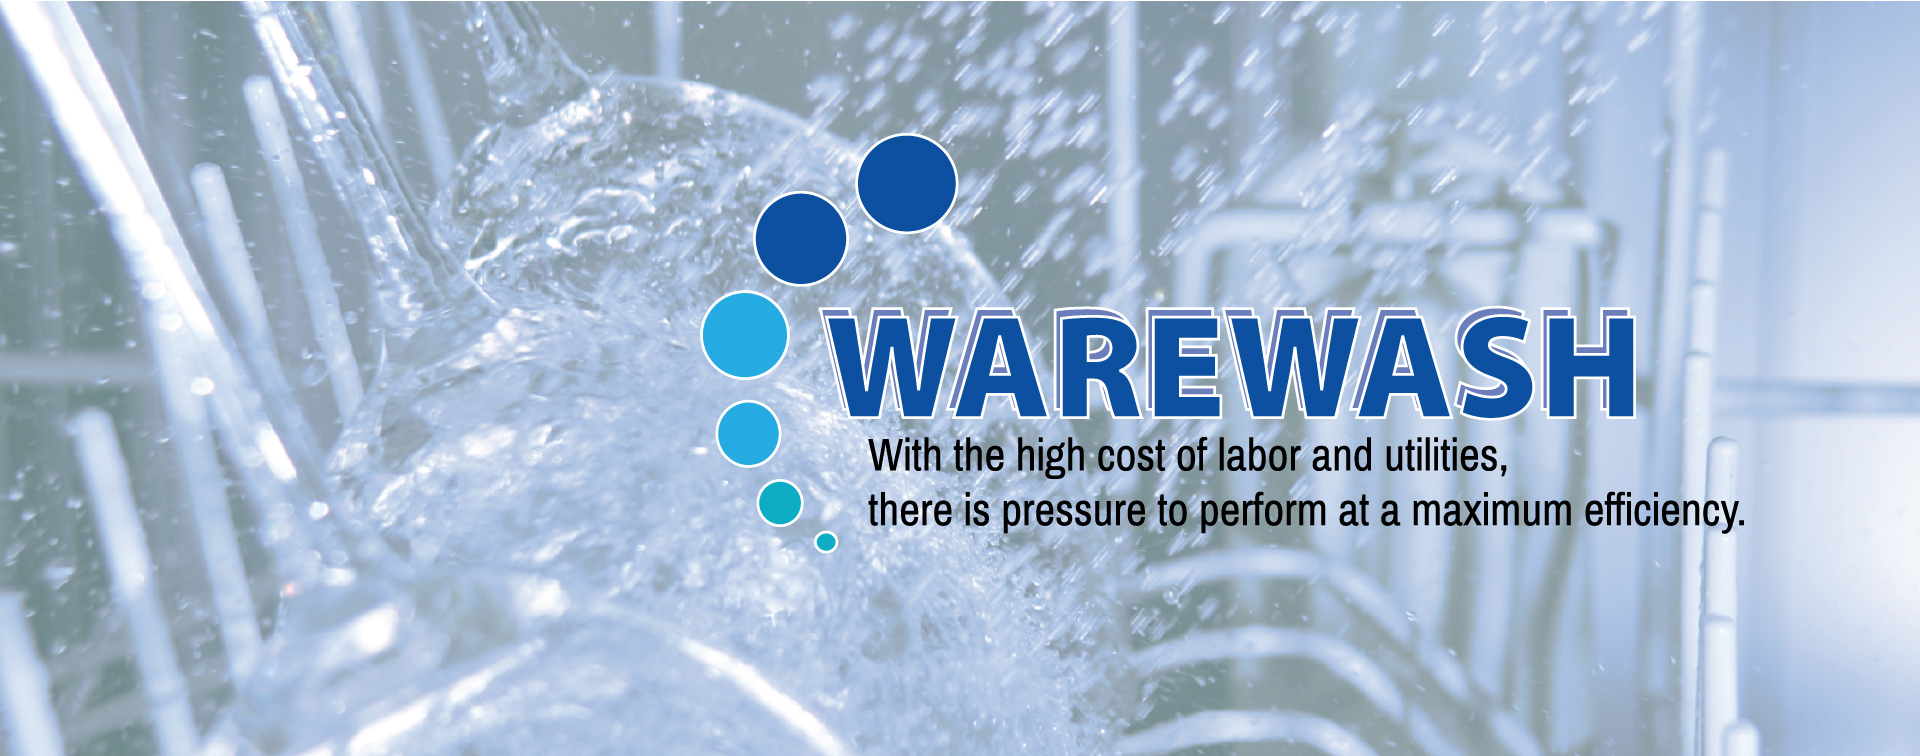 Warewash Products